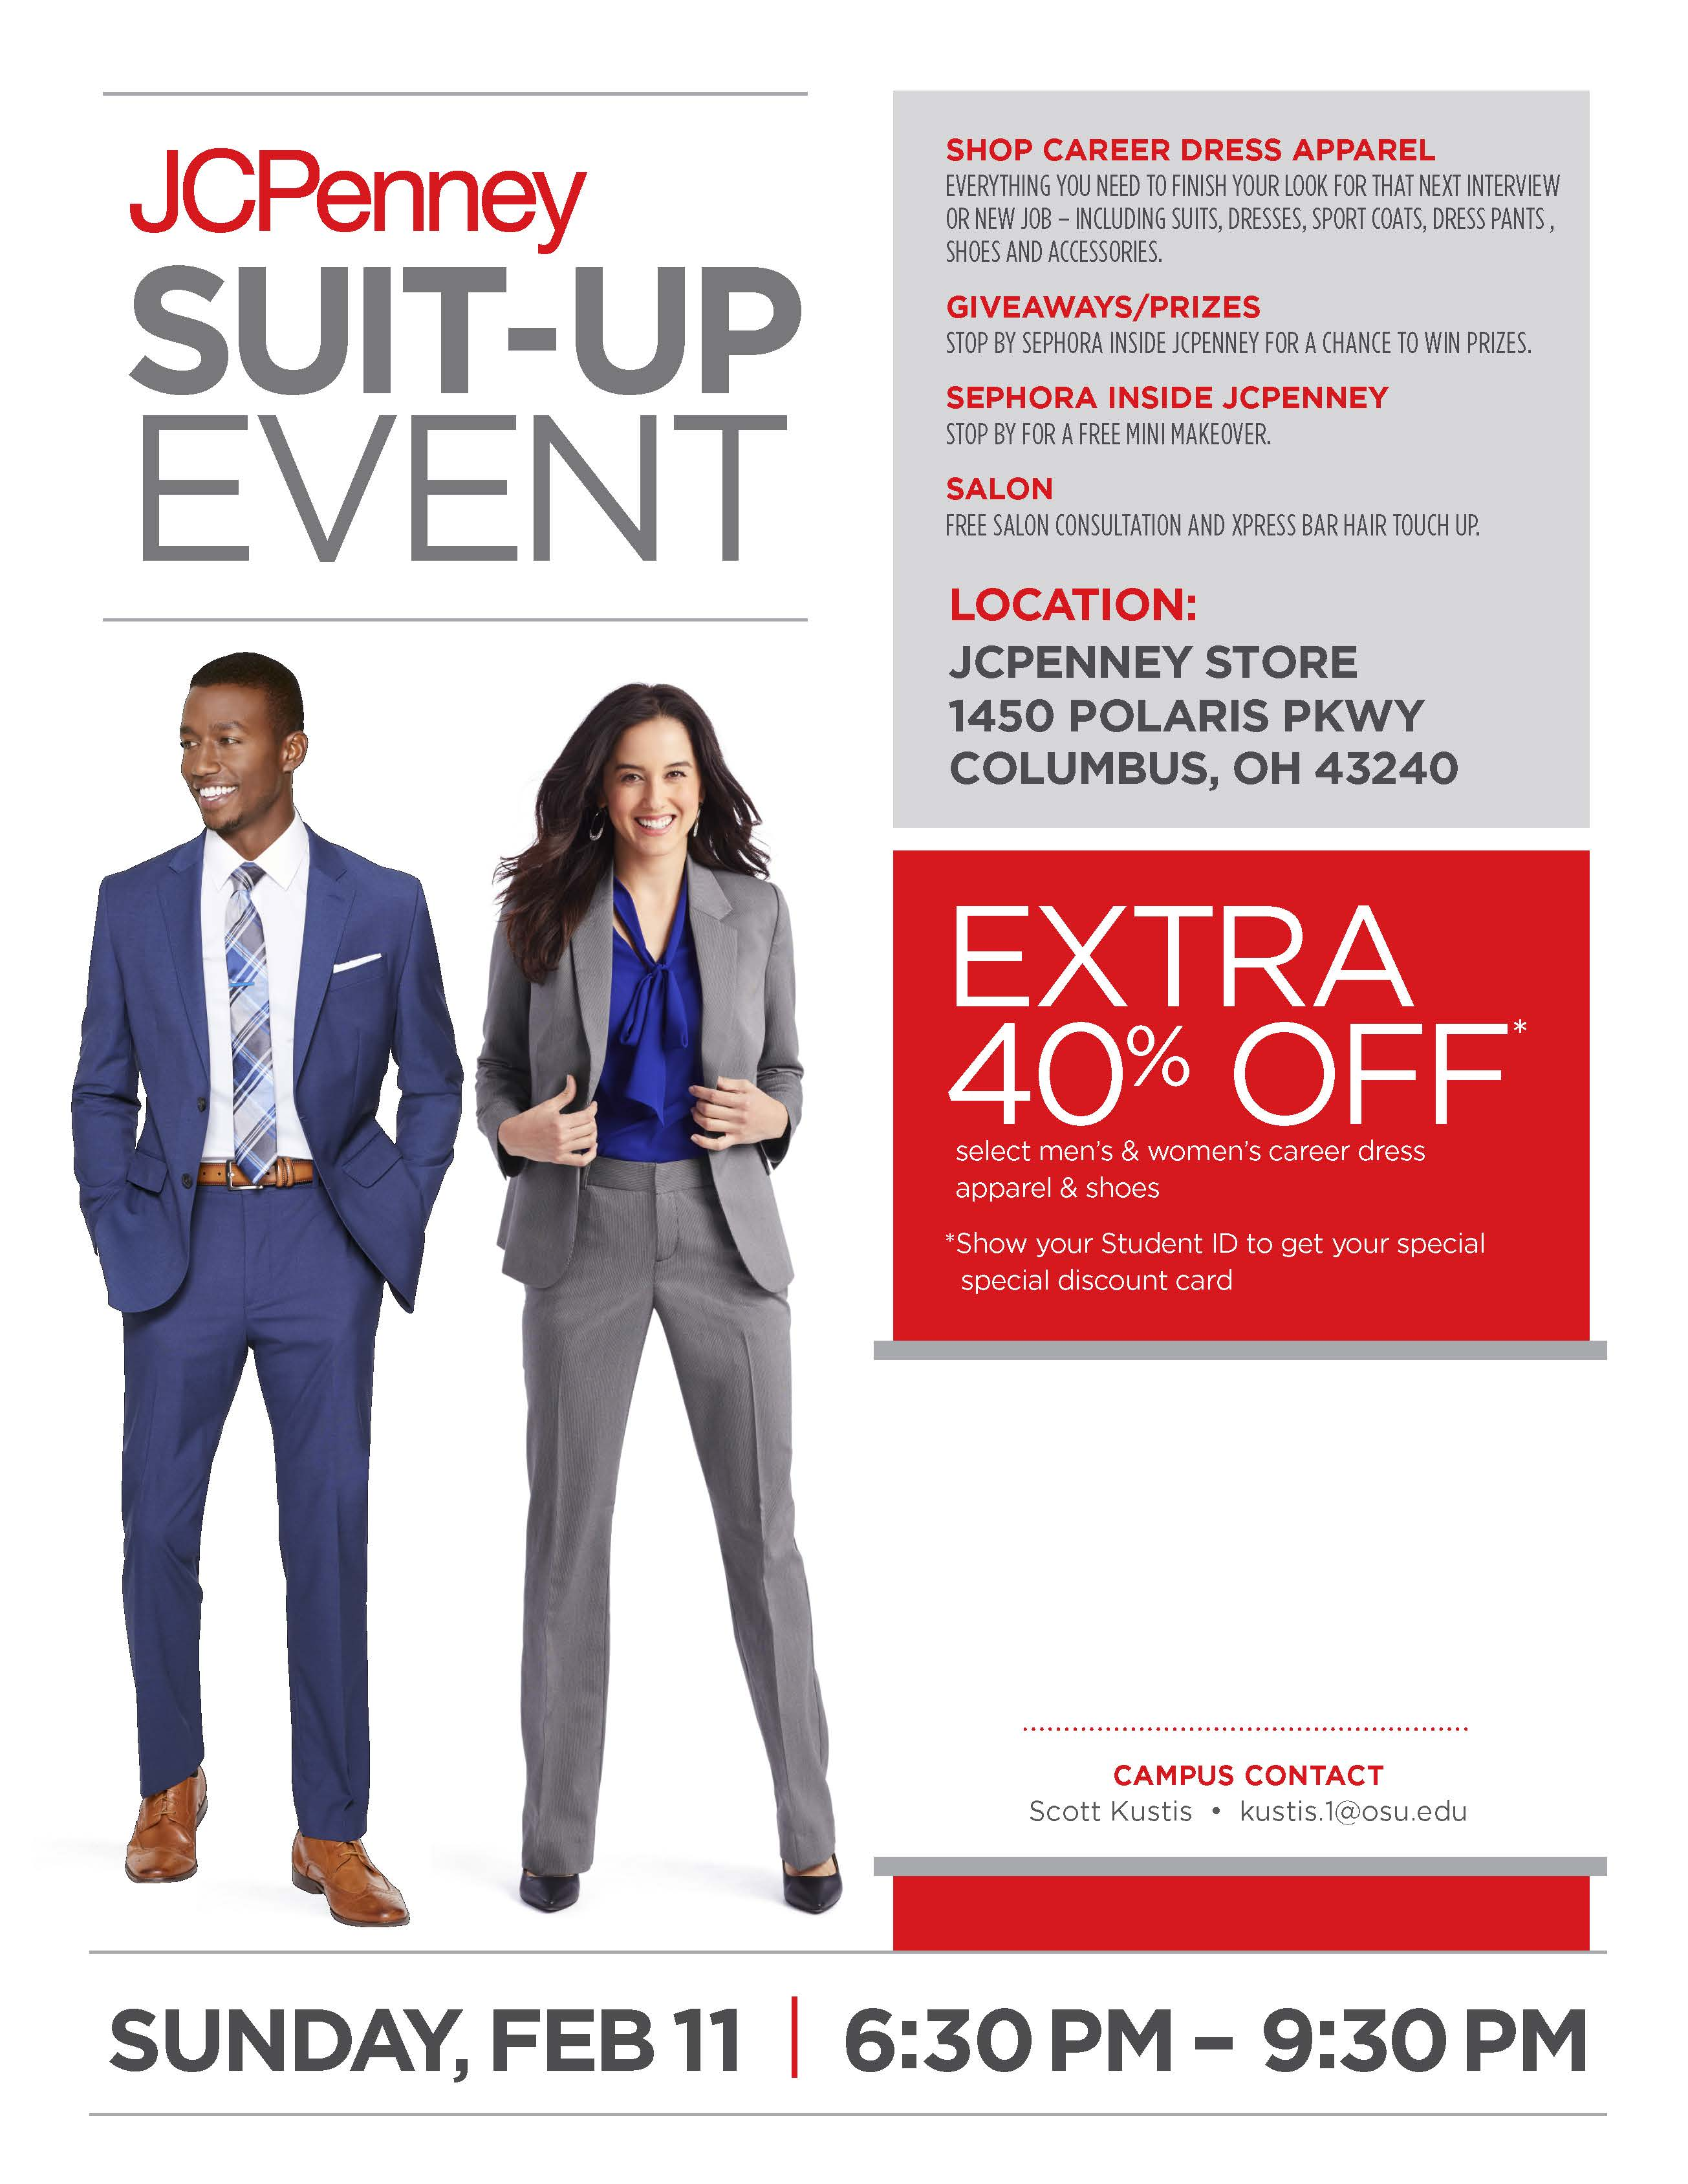 JCPenney Suit-Up Event | Engineering Career Services